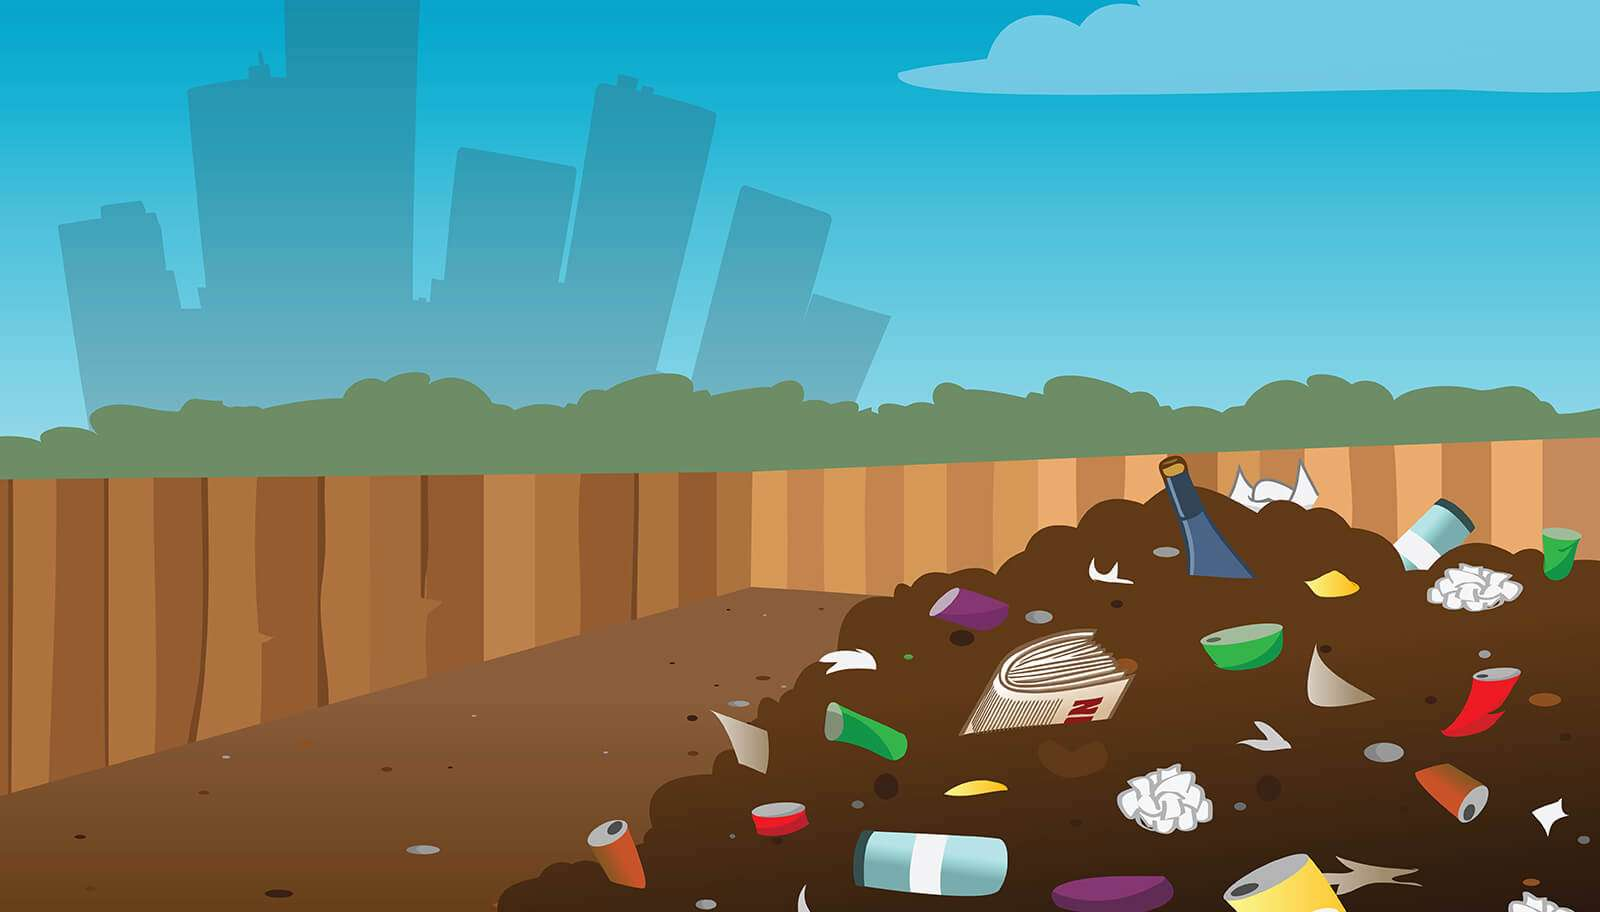 Cartoon vector illustration of a landfill